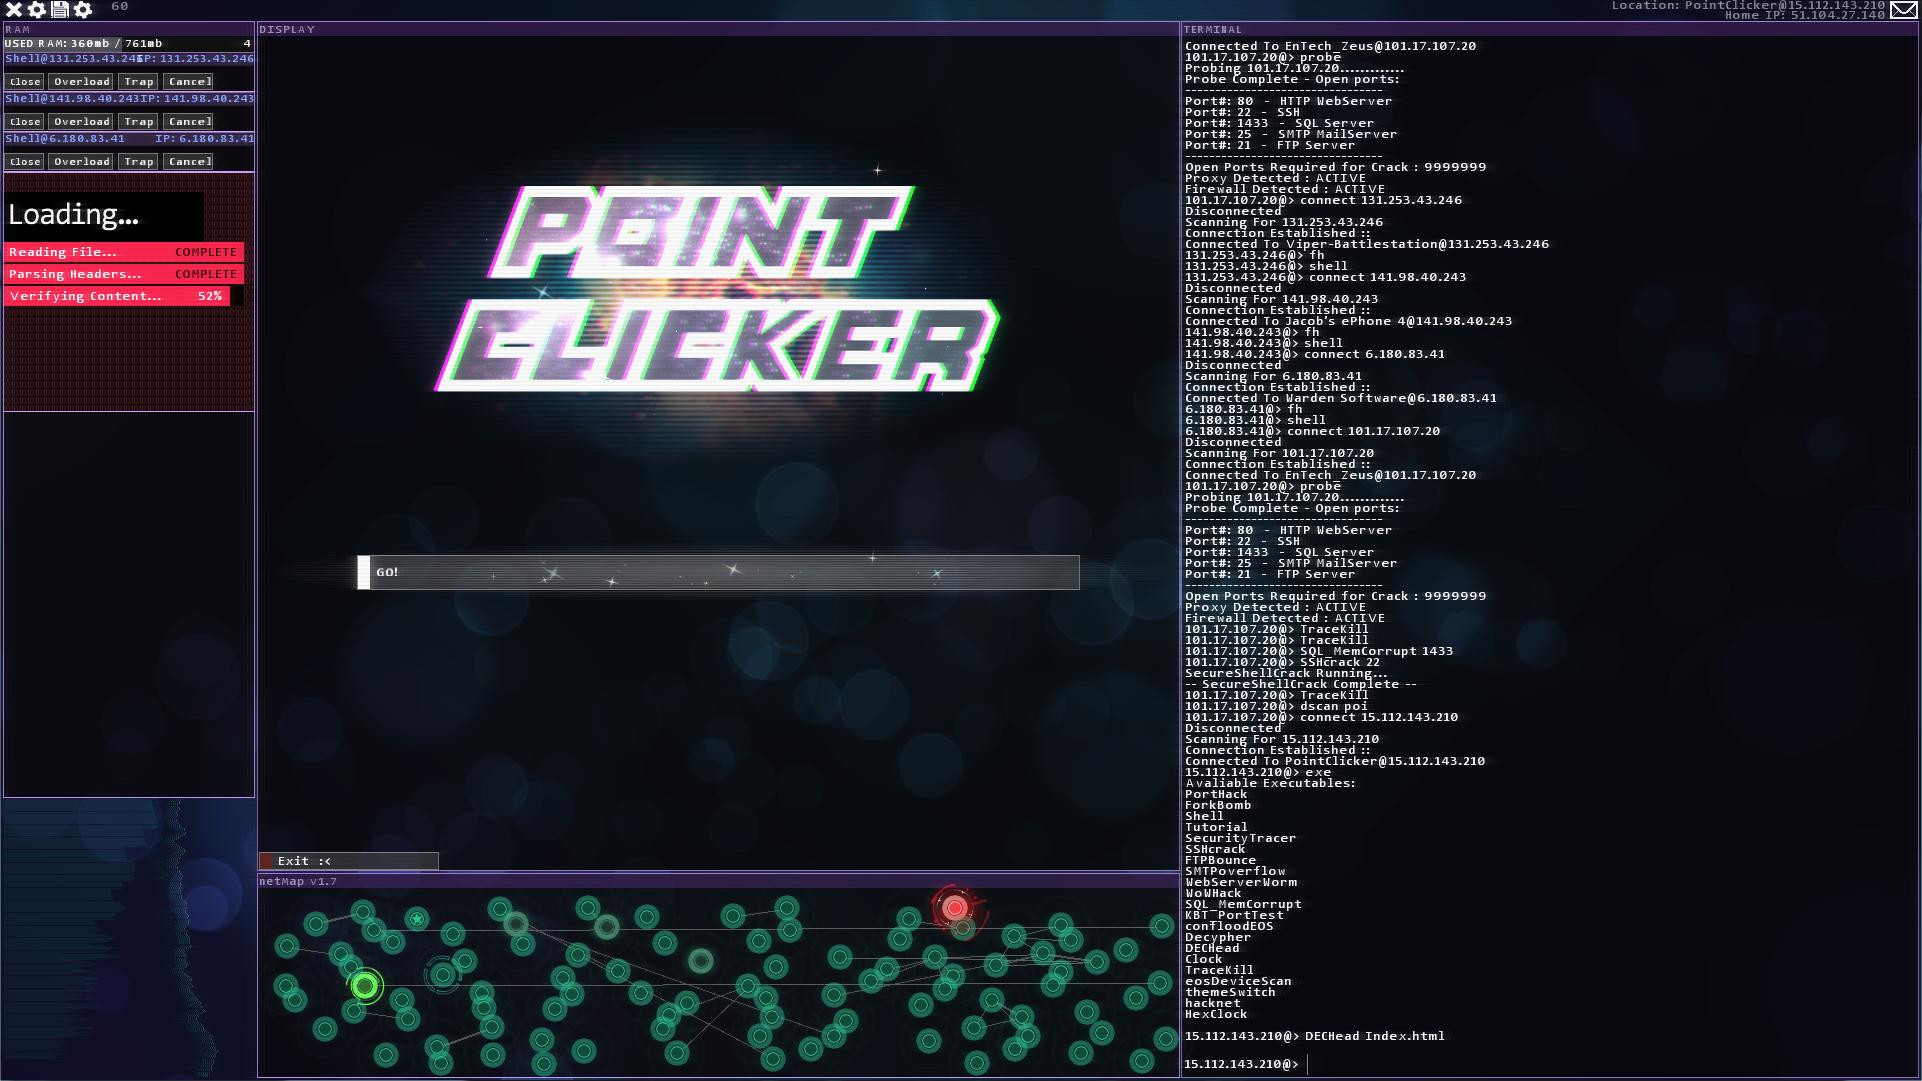 Hacknet (Steam Key)